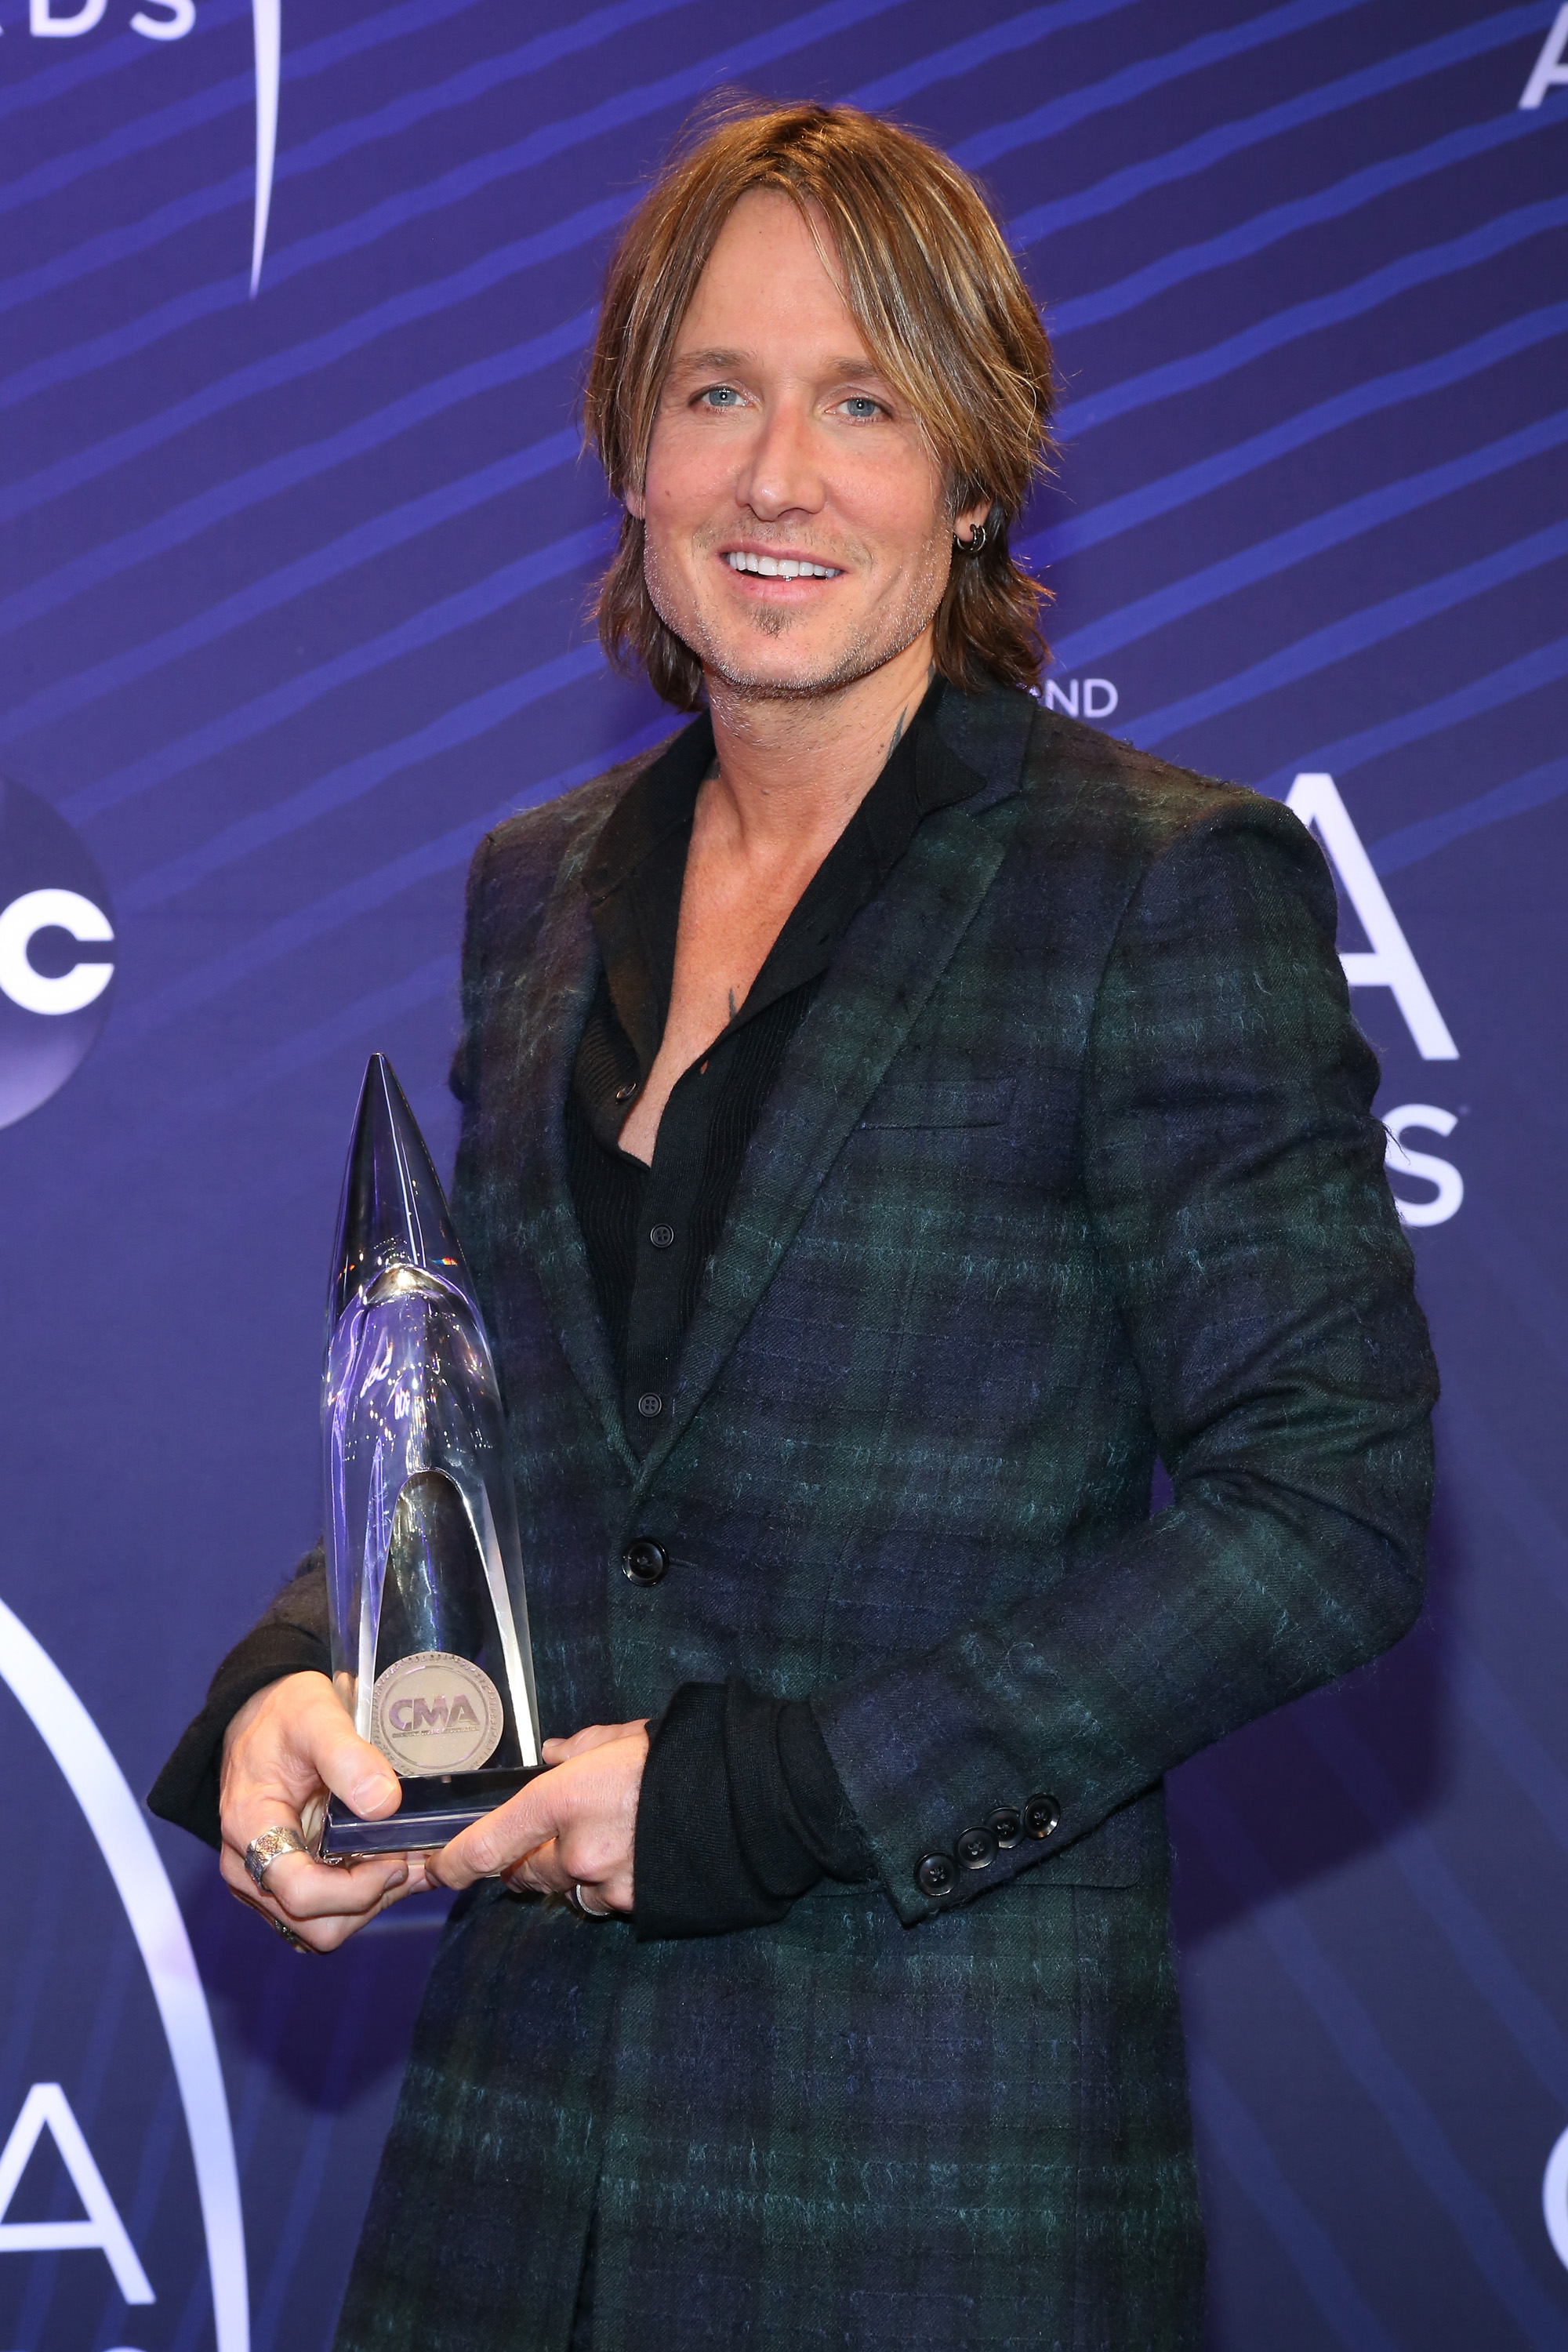 Singer-songwriter Keith Urban speaks to the press during the 52nd annual CMA Awards on November 14, 2018, in Nashville, Tennessee. (Getty Images)